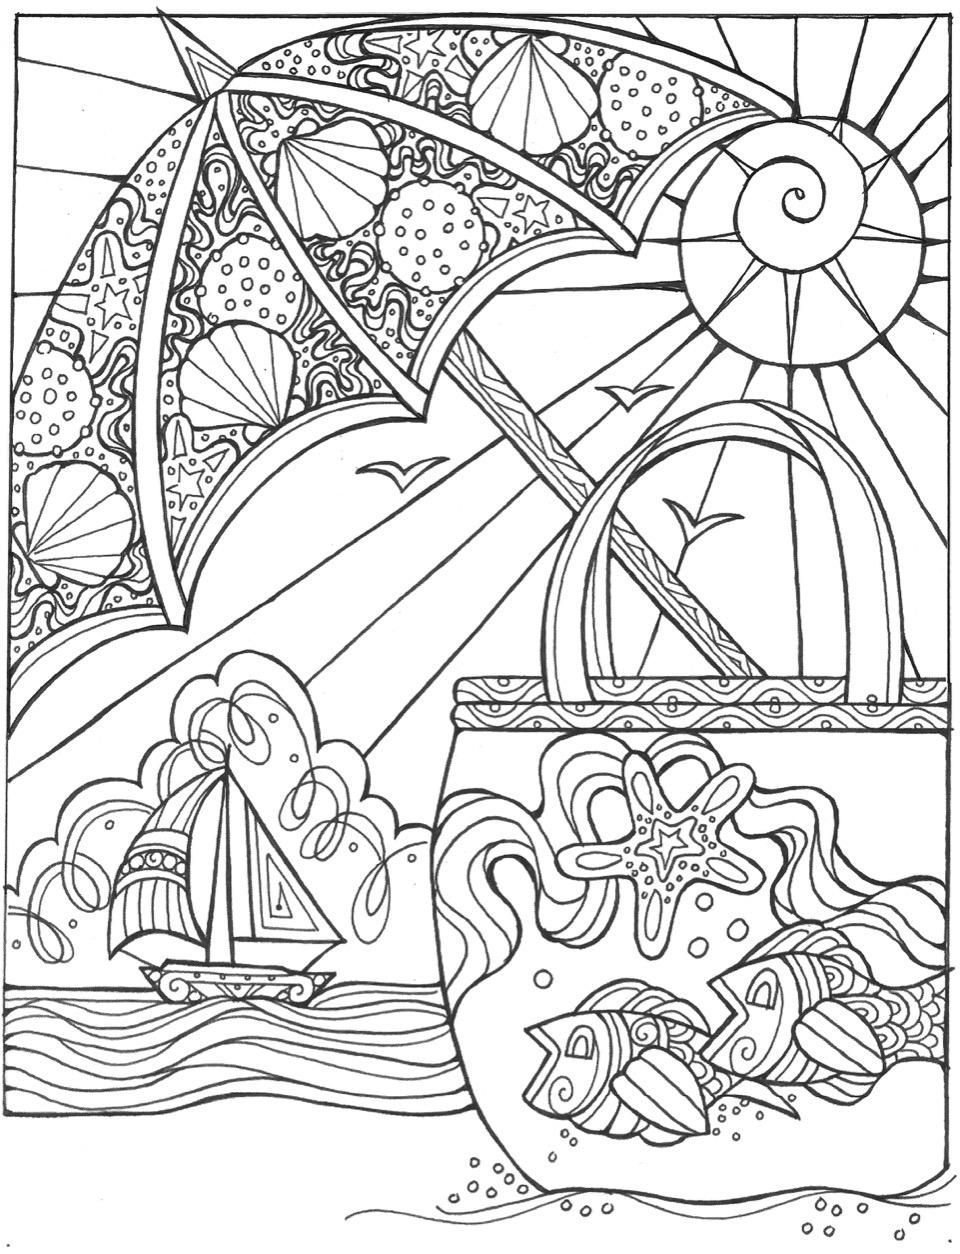 Summer Escape Beach Umbrella Coloring Page Summer Coloring Pages Umbrella Coloring Page Beach Coloring Pages